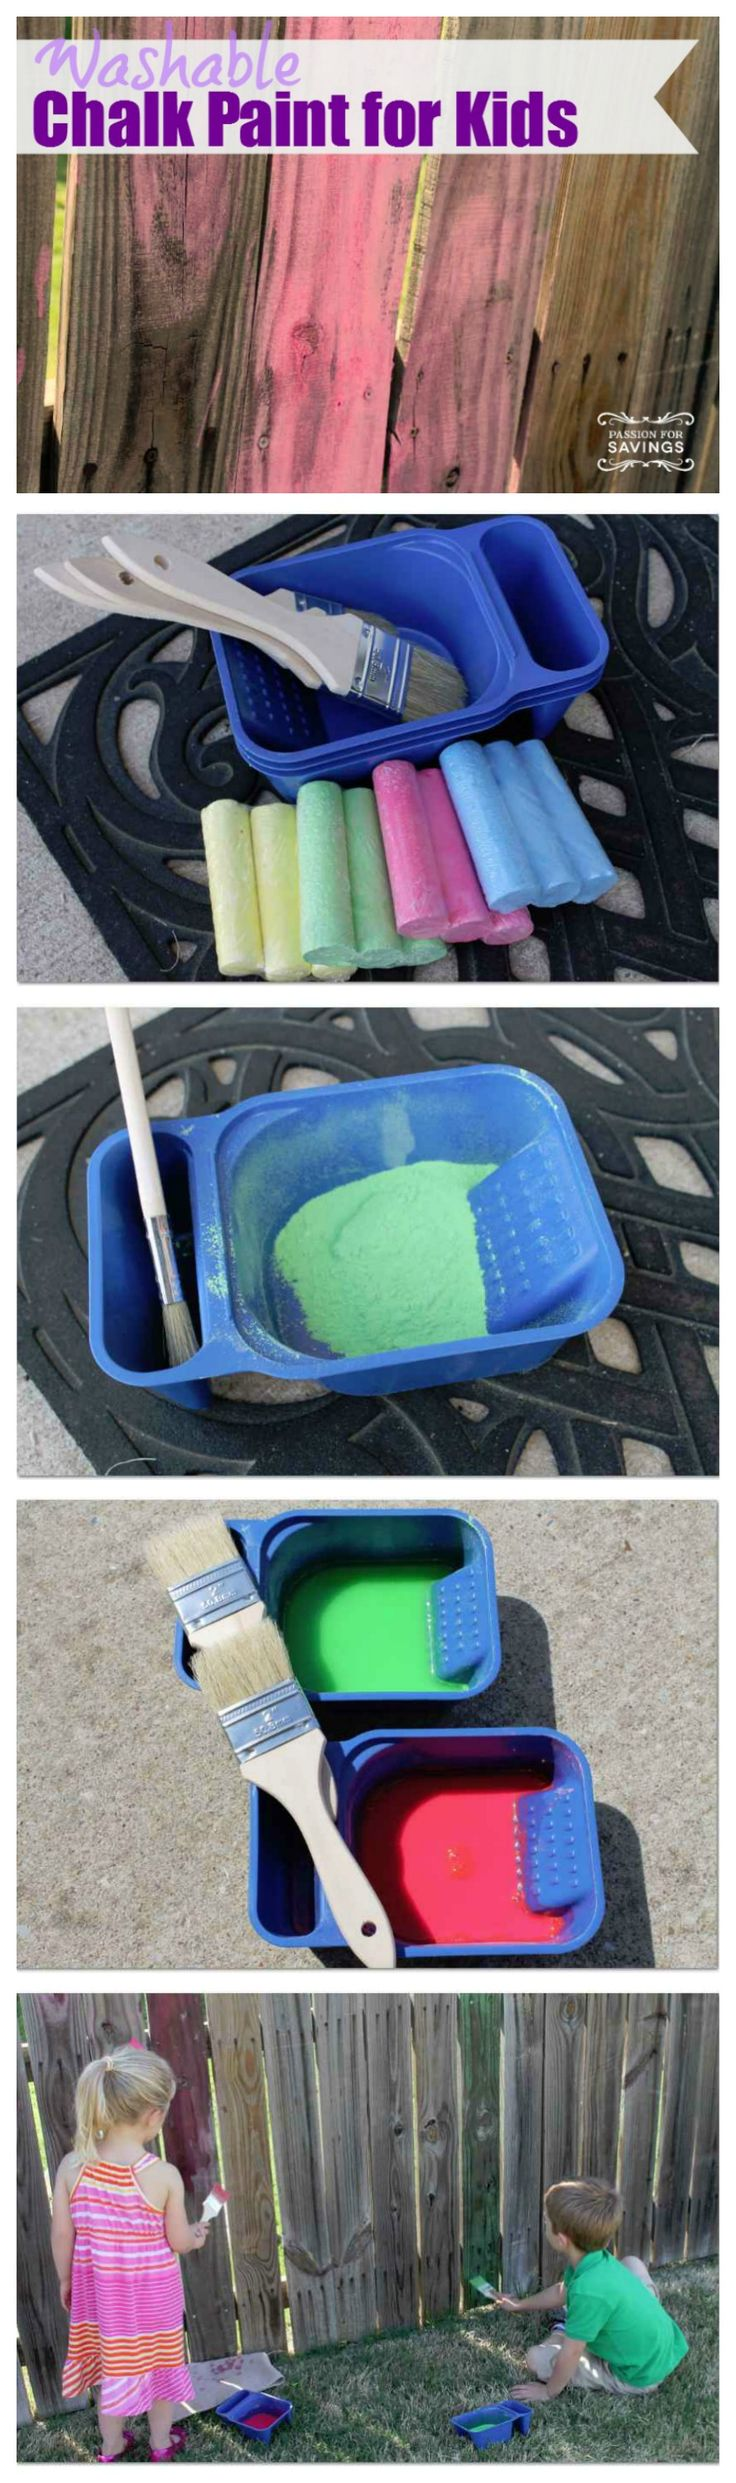 DIY Washable Chalk Paint for Kids